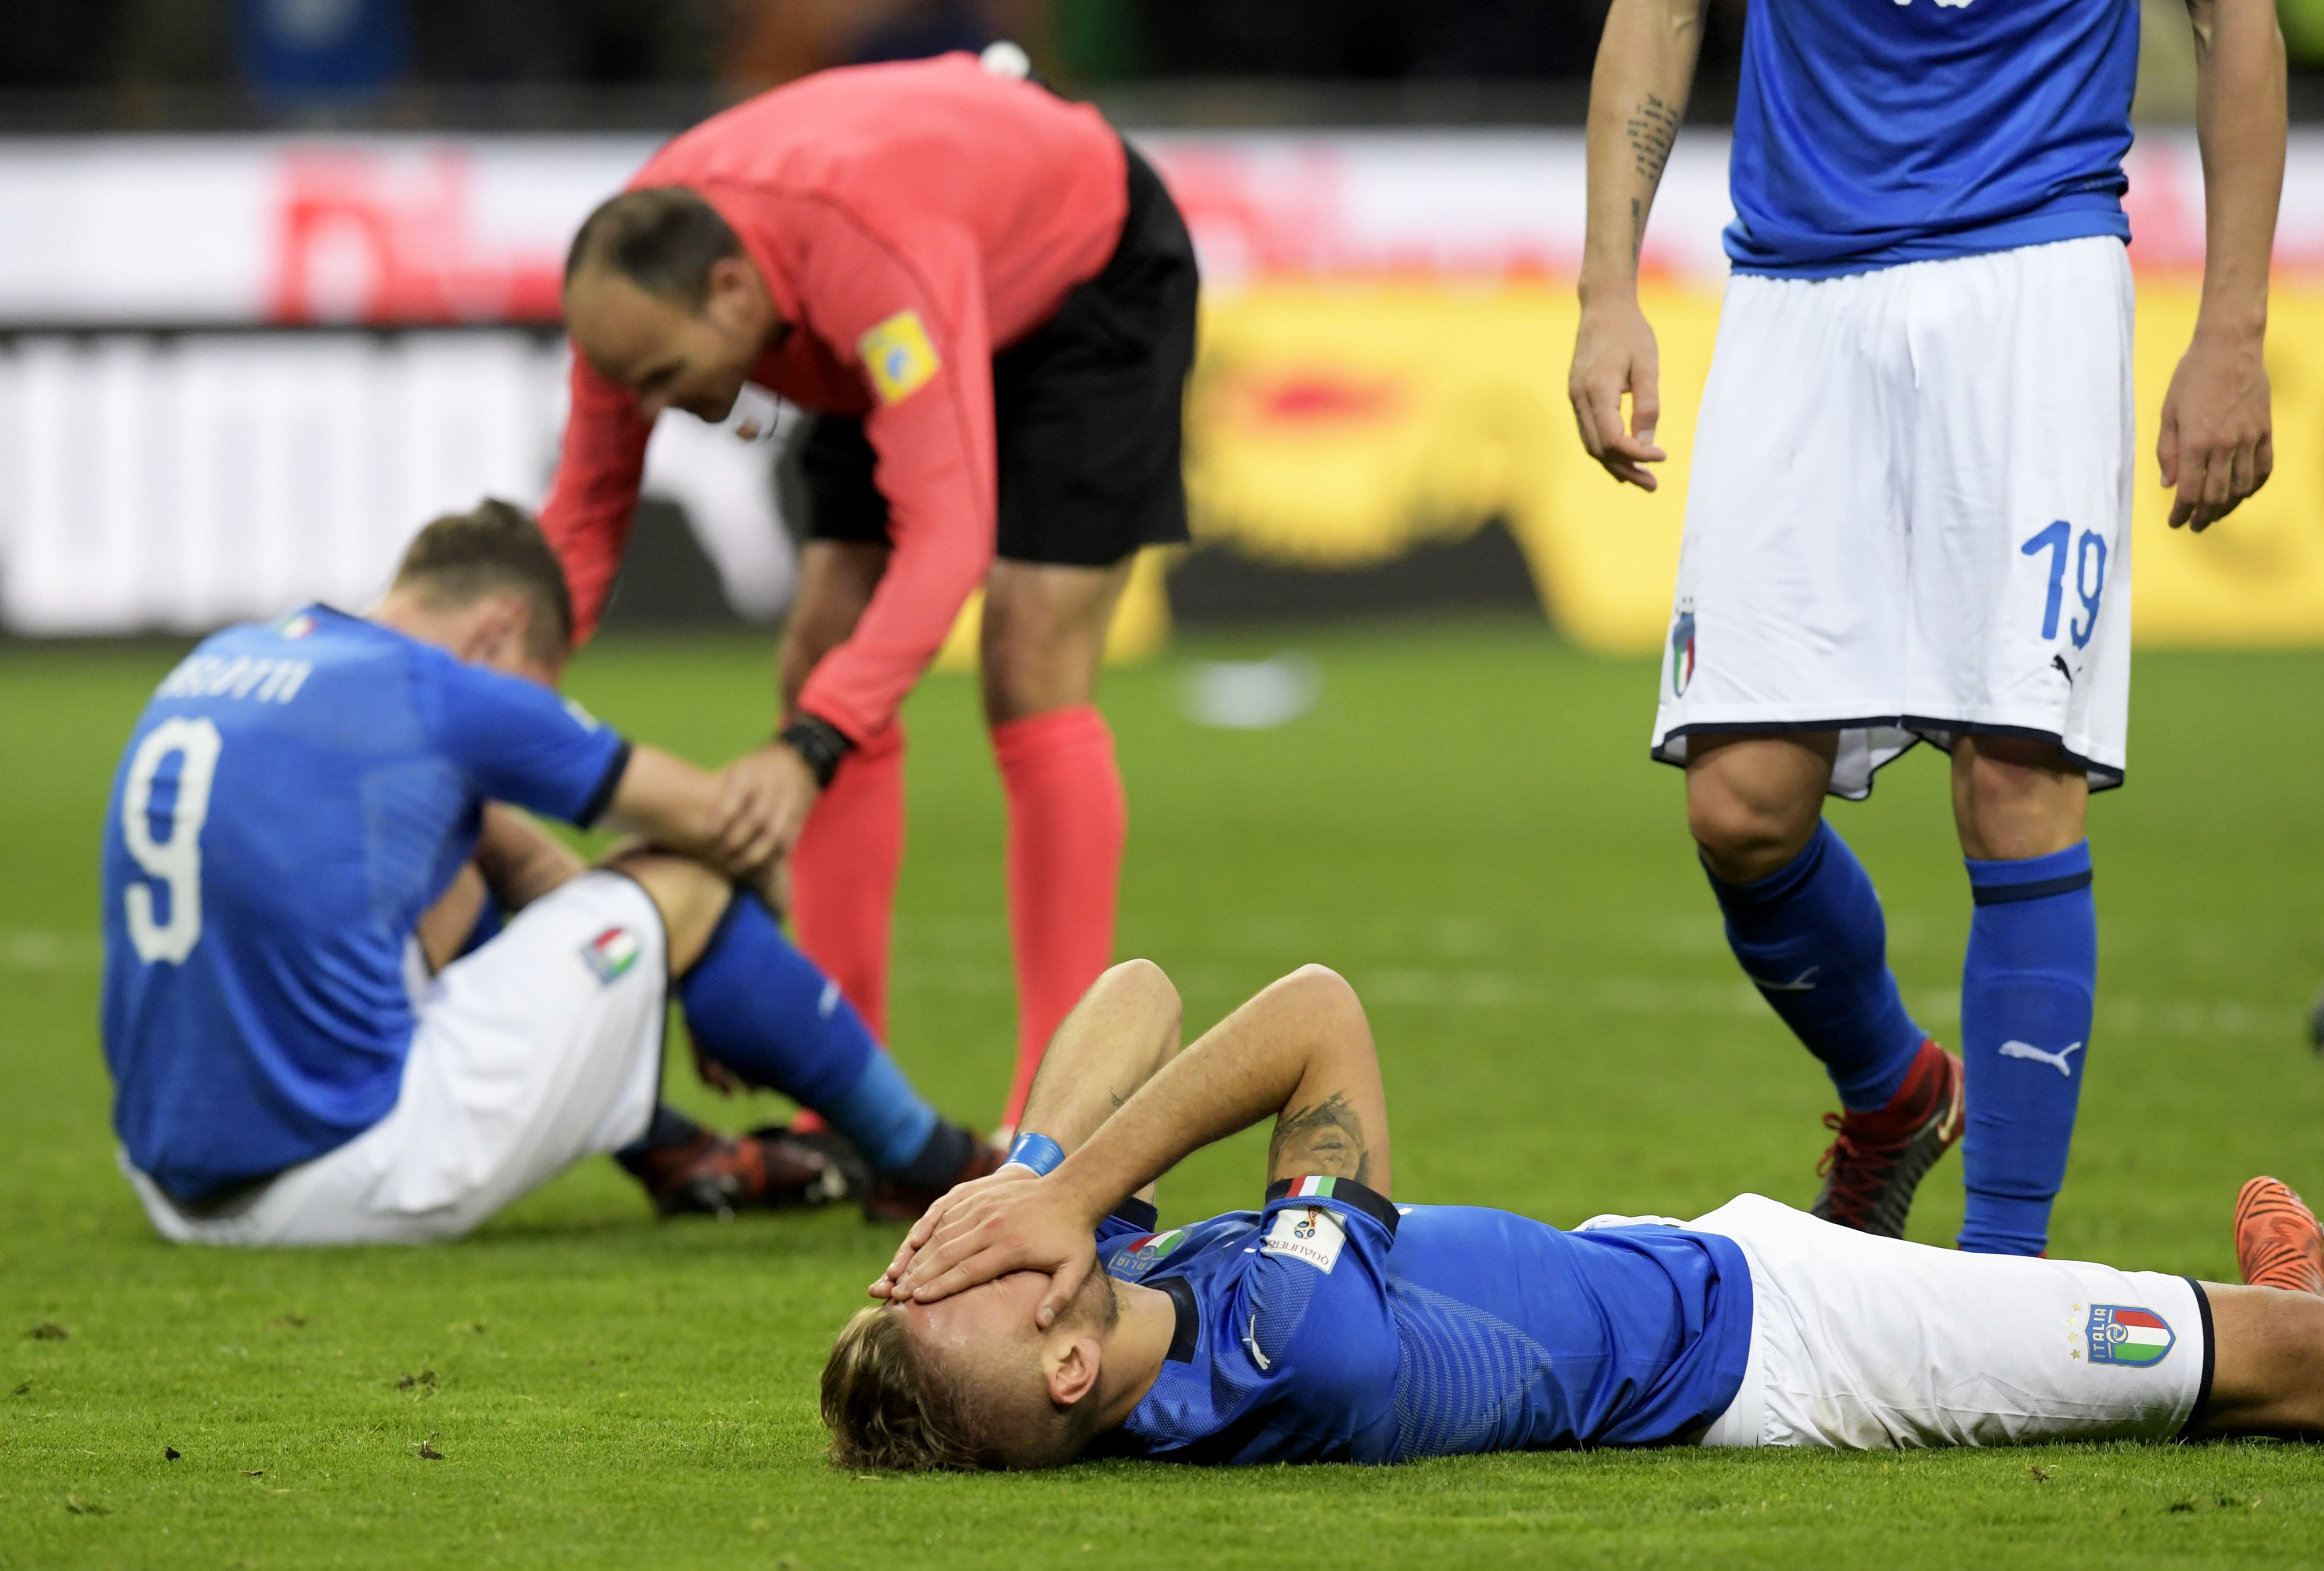 Italy's forward Ciro Immobile reacts at the end of the FIFA World Cup 2018 qualification football match between Italy and Sweden, on November 13, 2017 at the San Siro stadium in Milan. —AFP